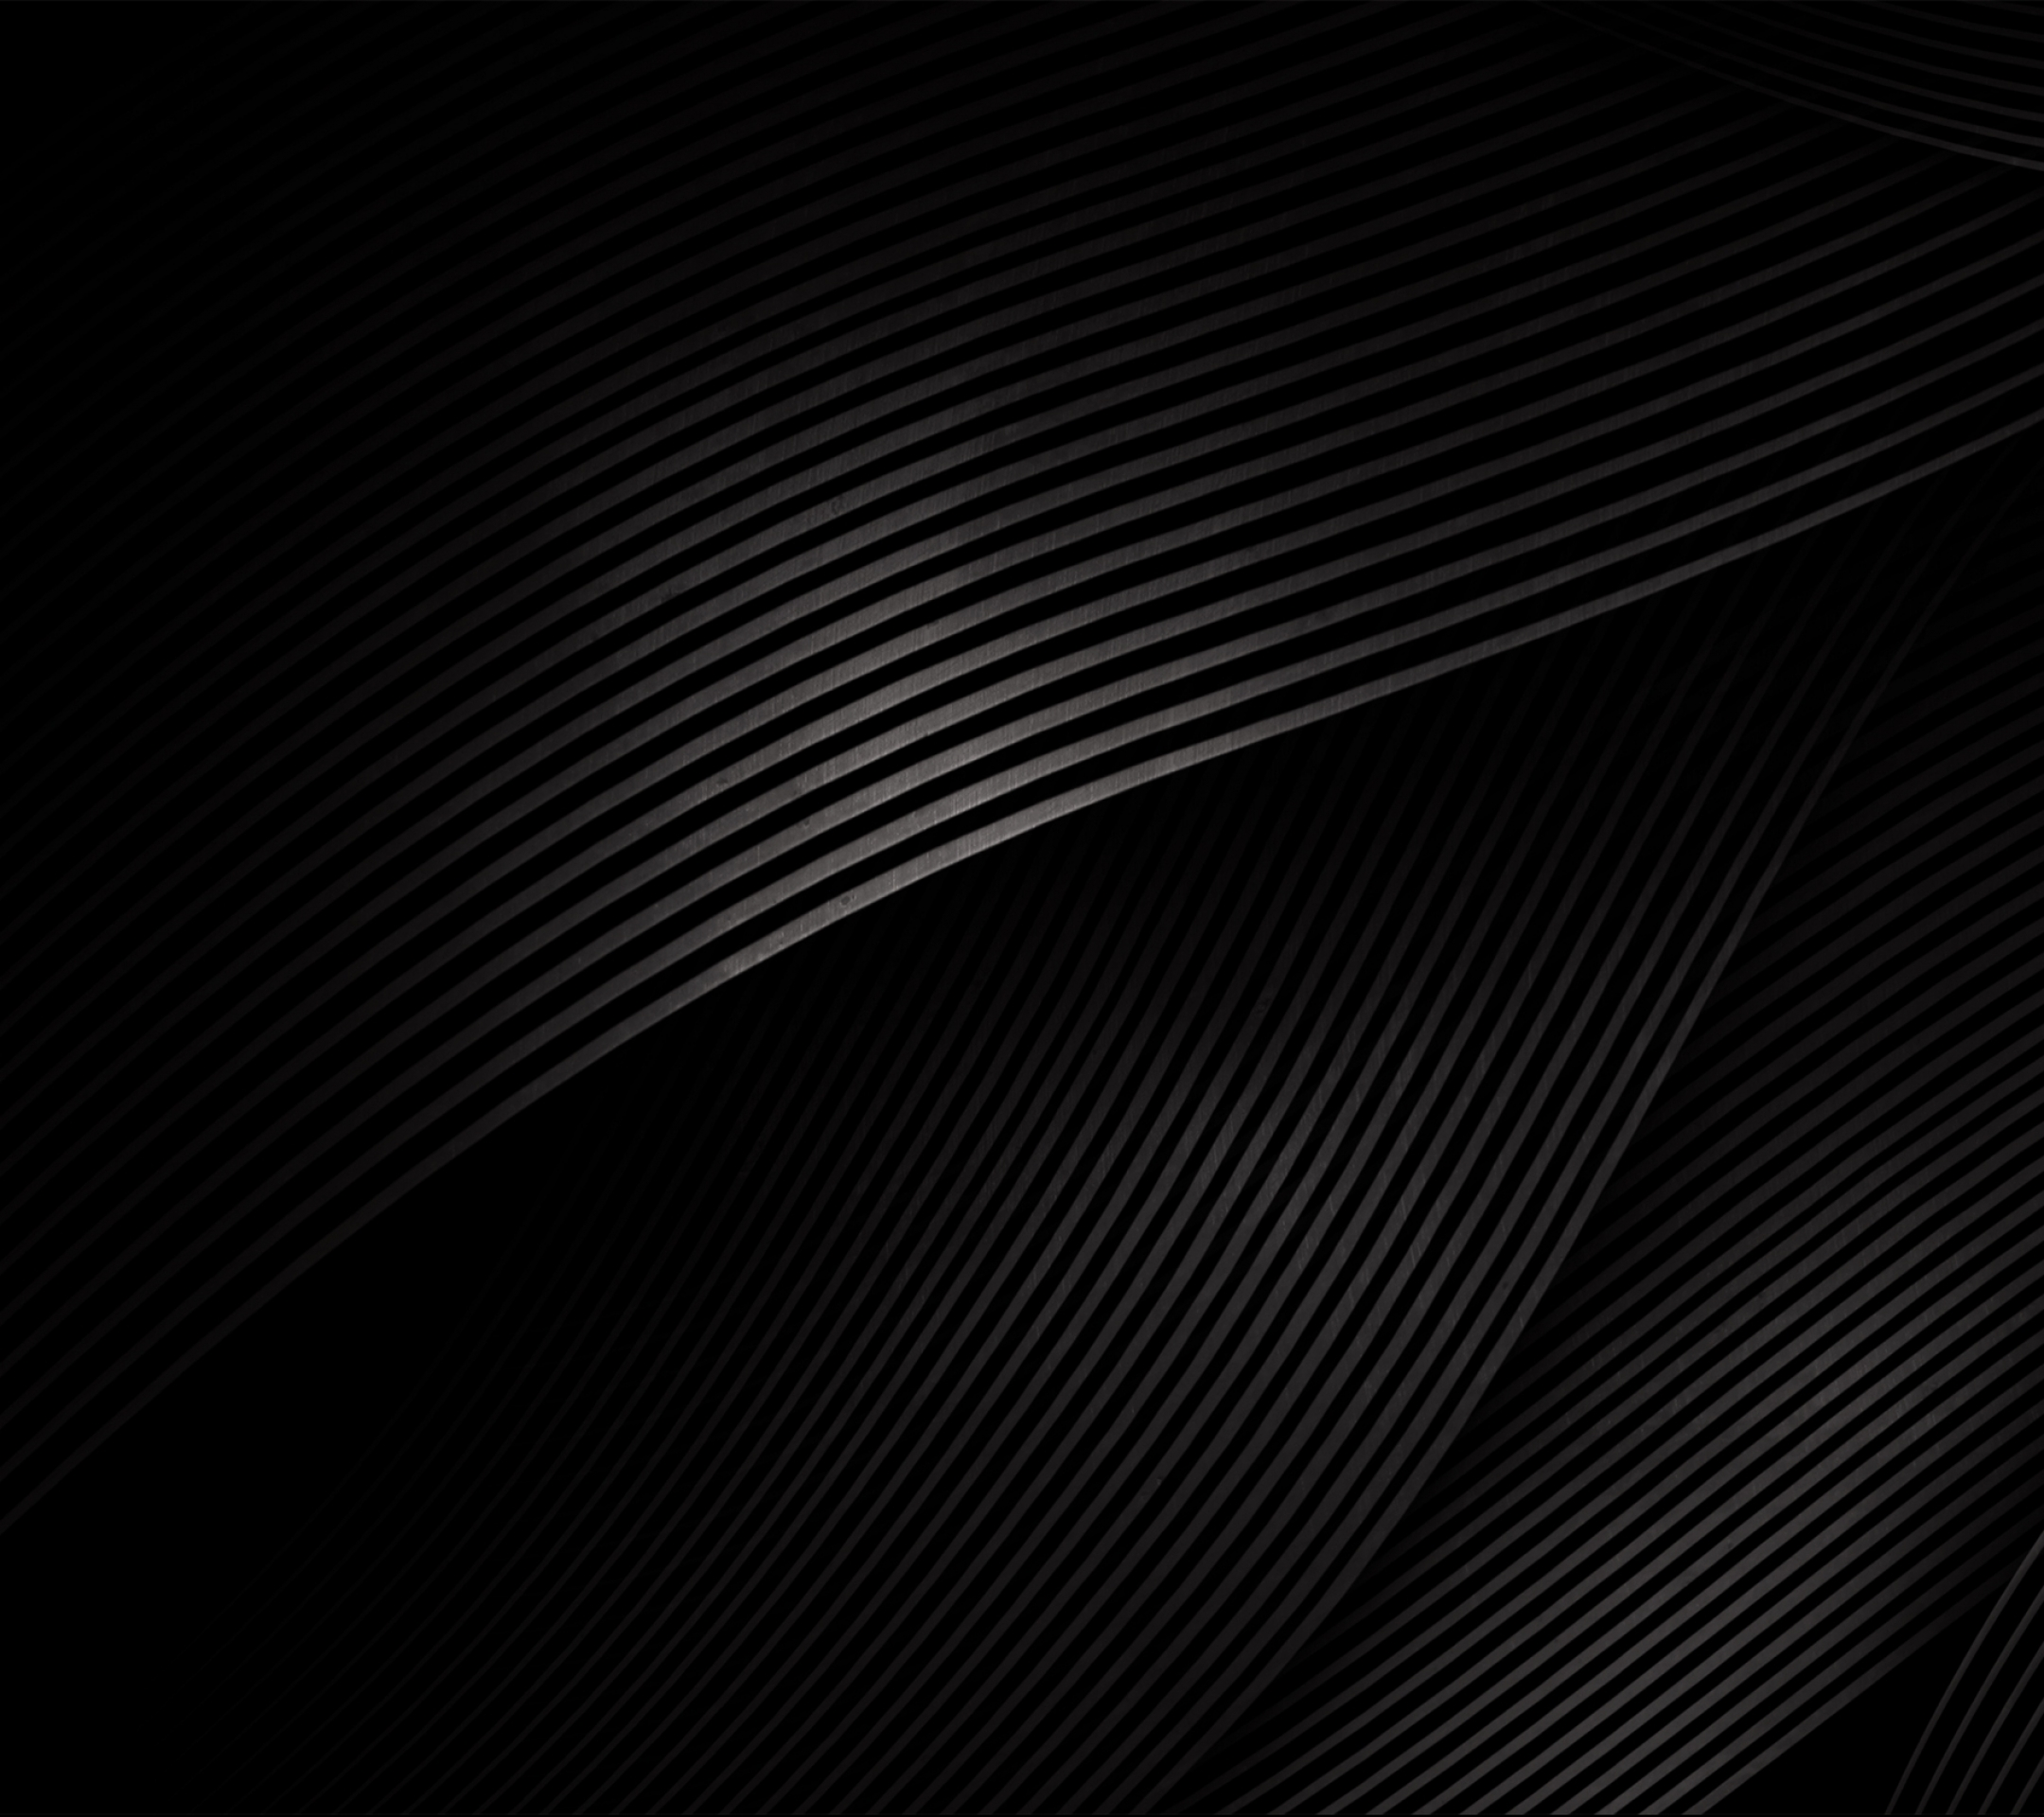 Abstract / Black (2160x1920) Mobile Wallpaper